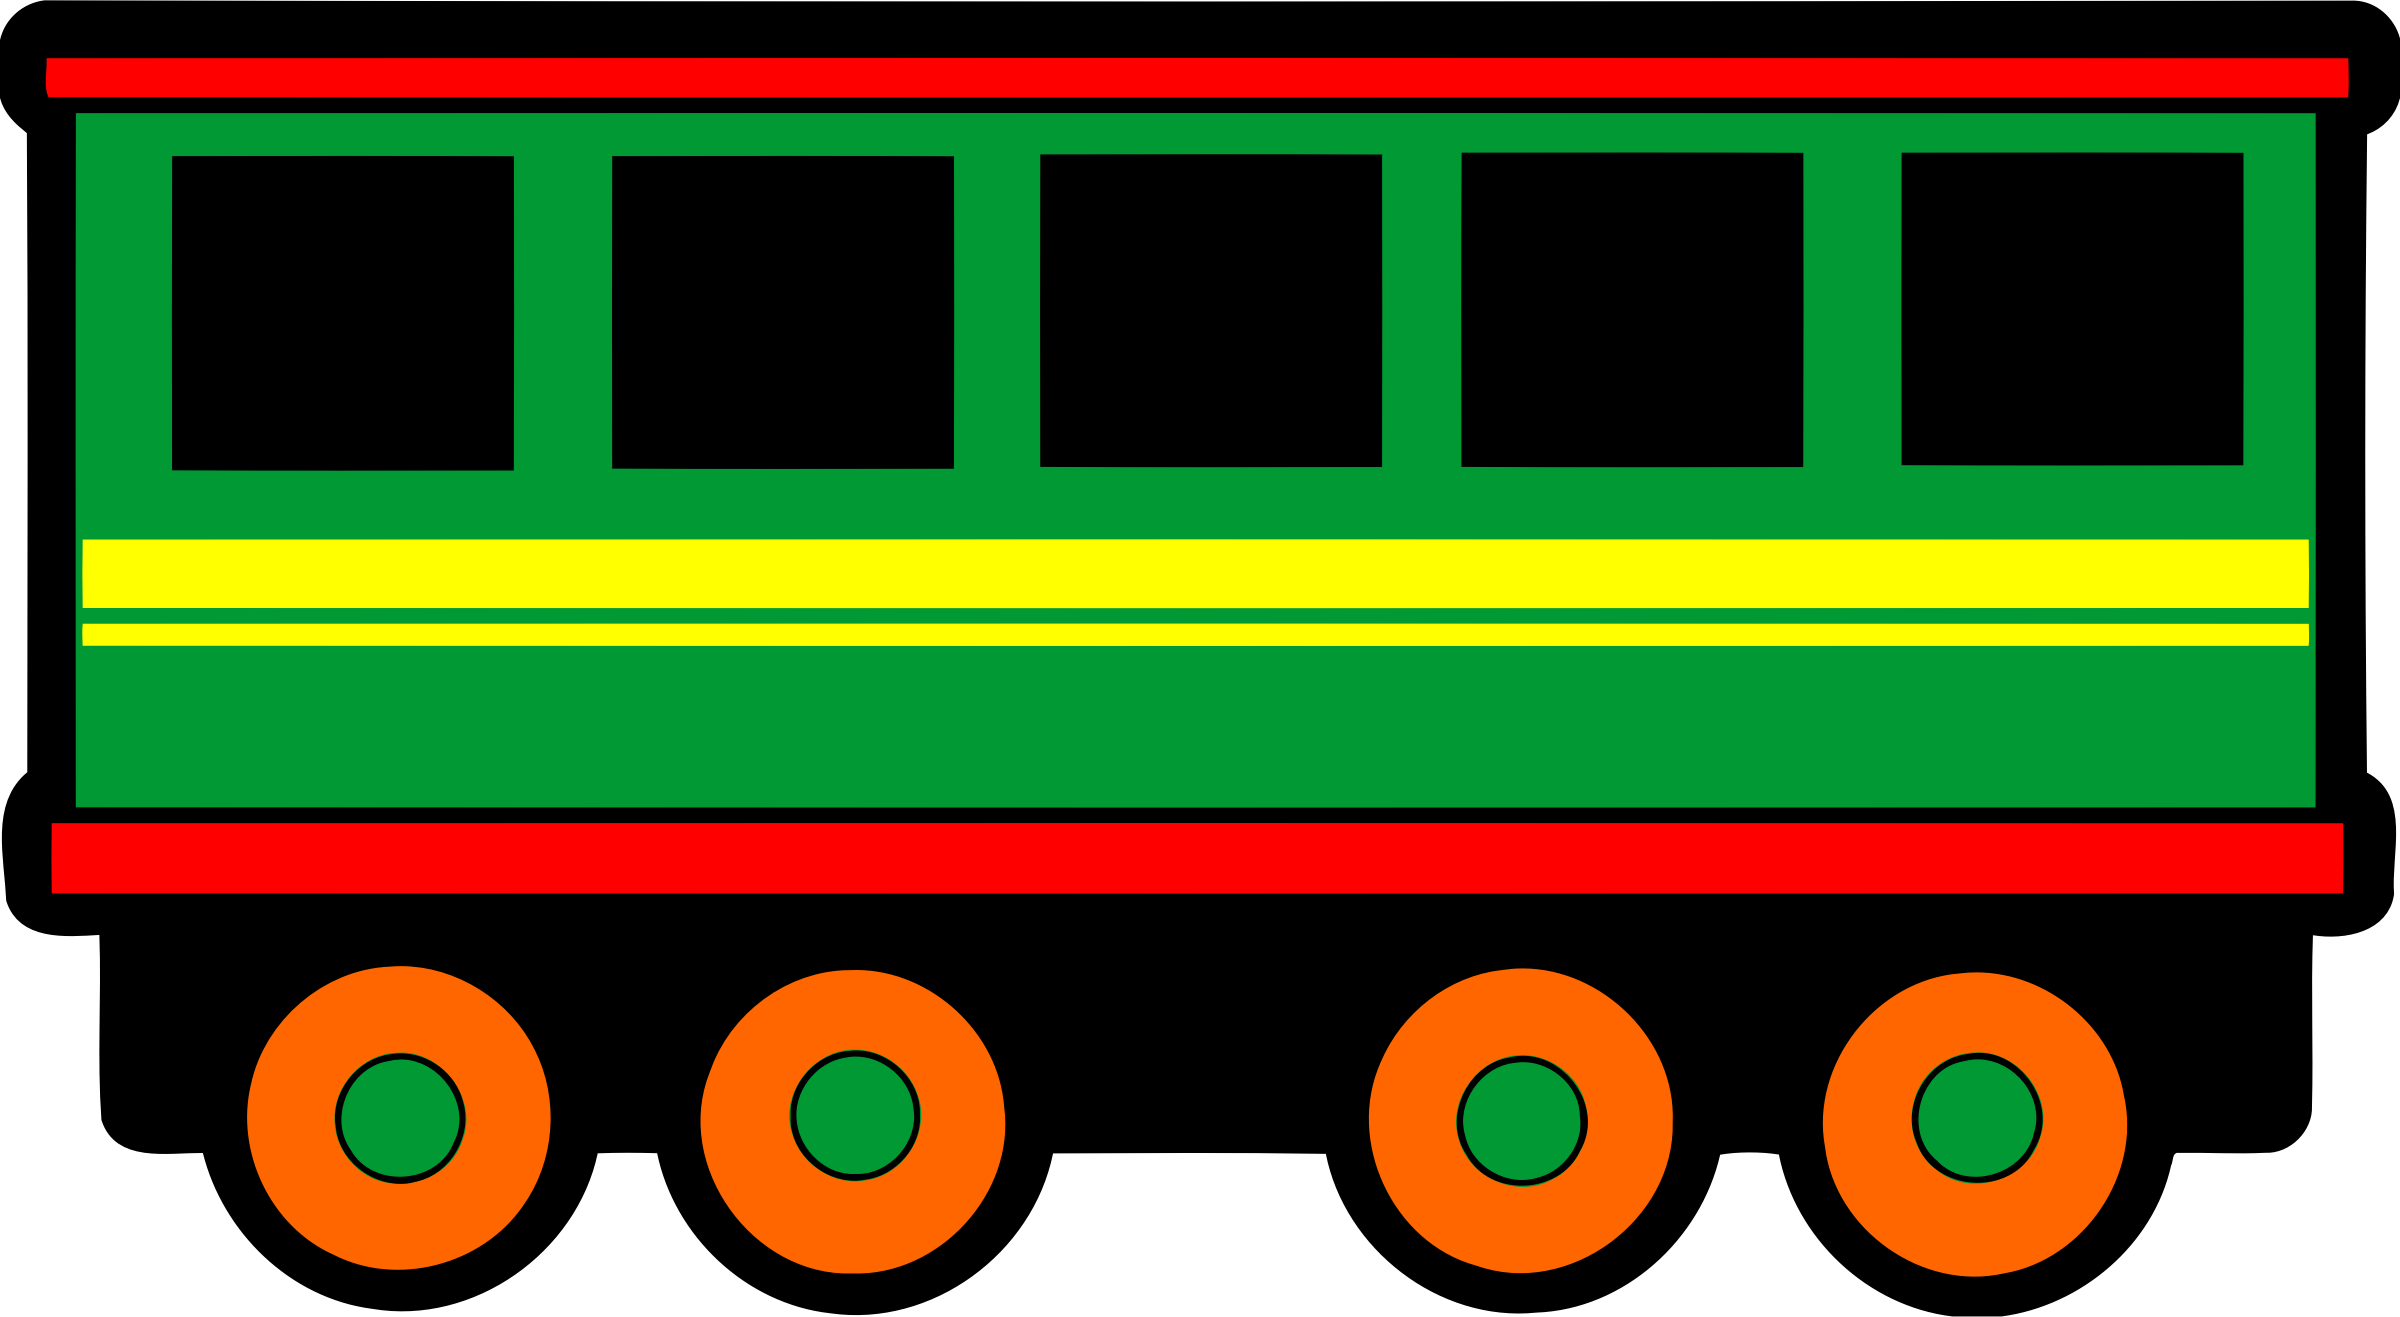 Railway carriage (colour) by Firkin